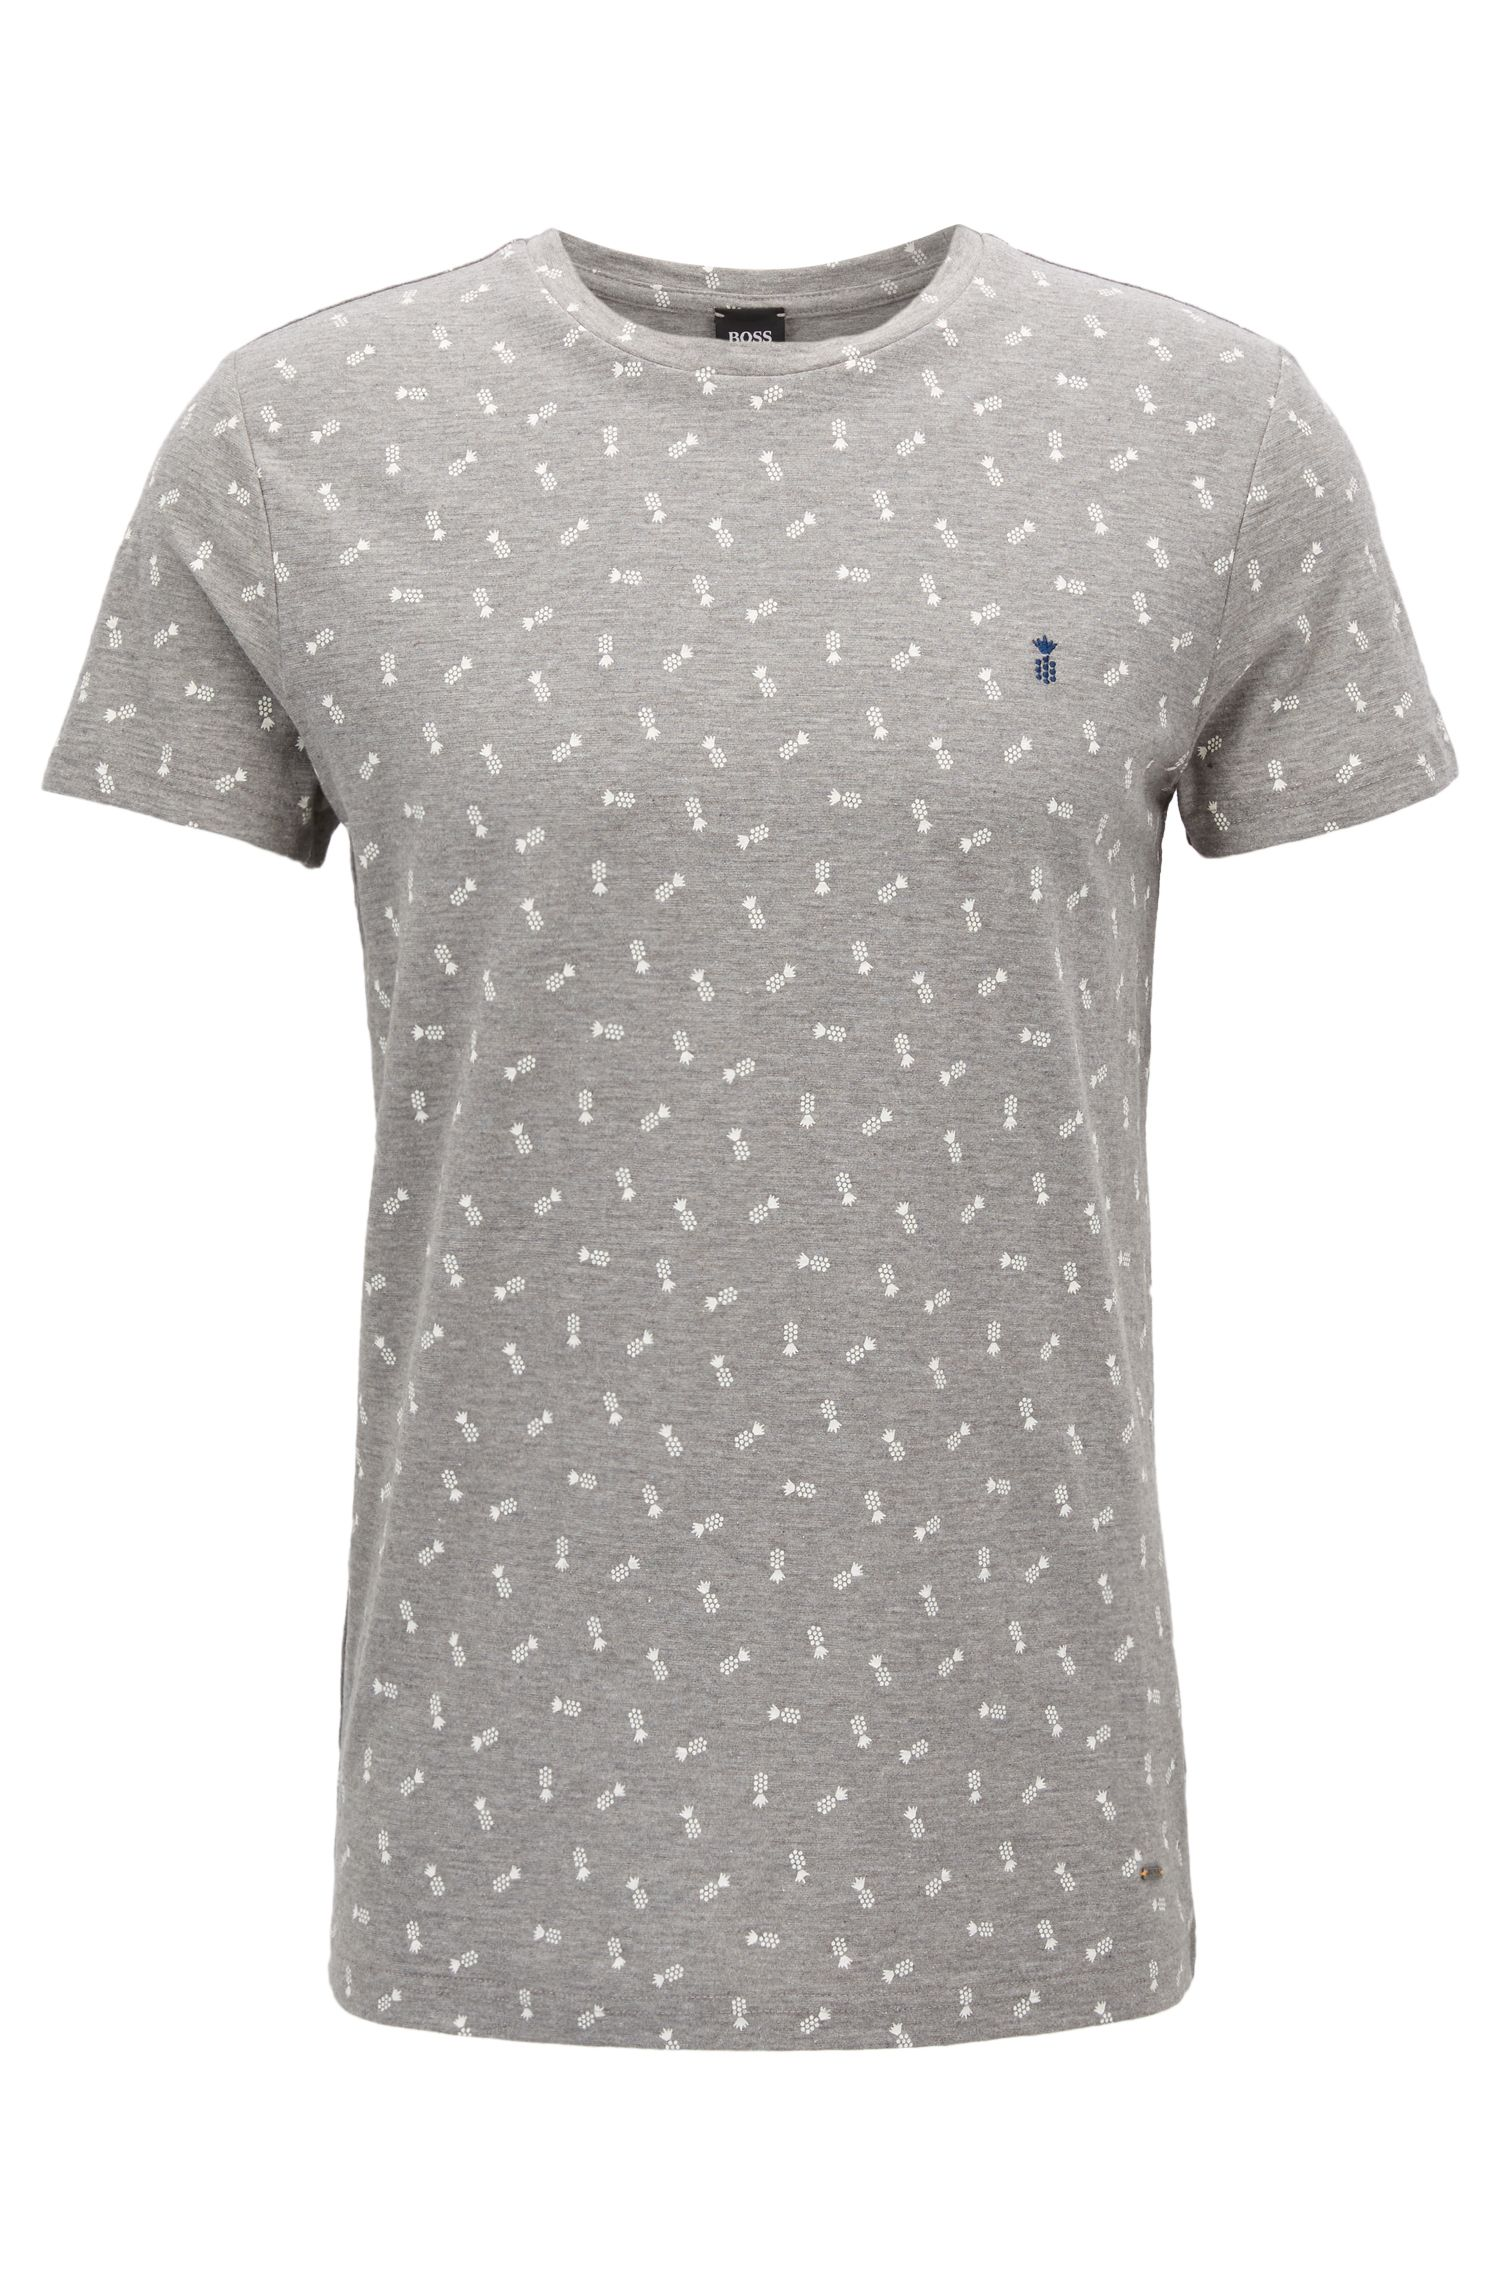 Micro-pattern cotton T-shirt in a regular fit